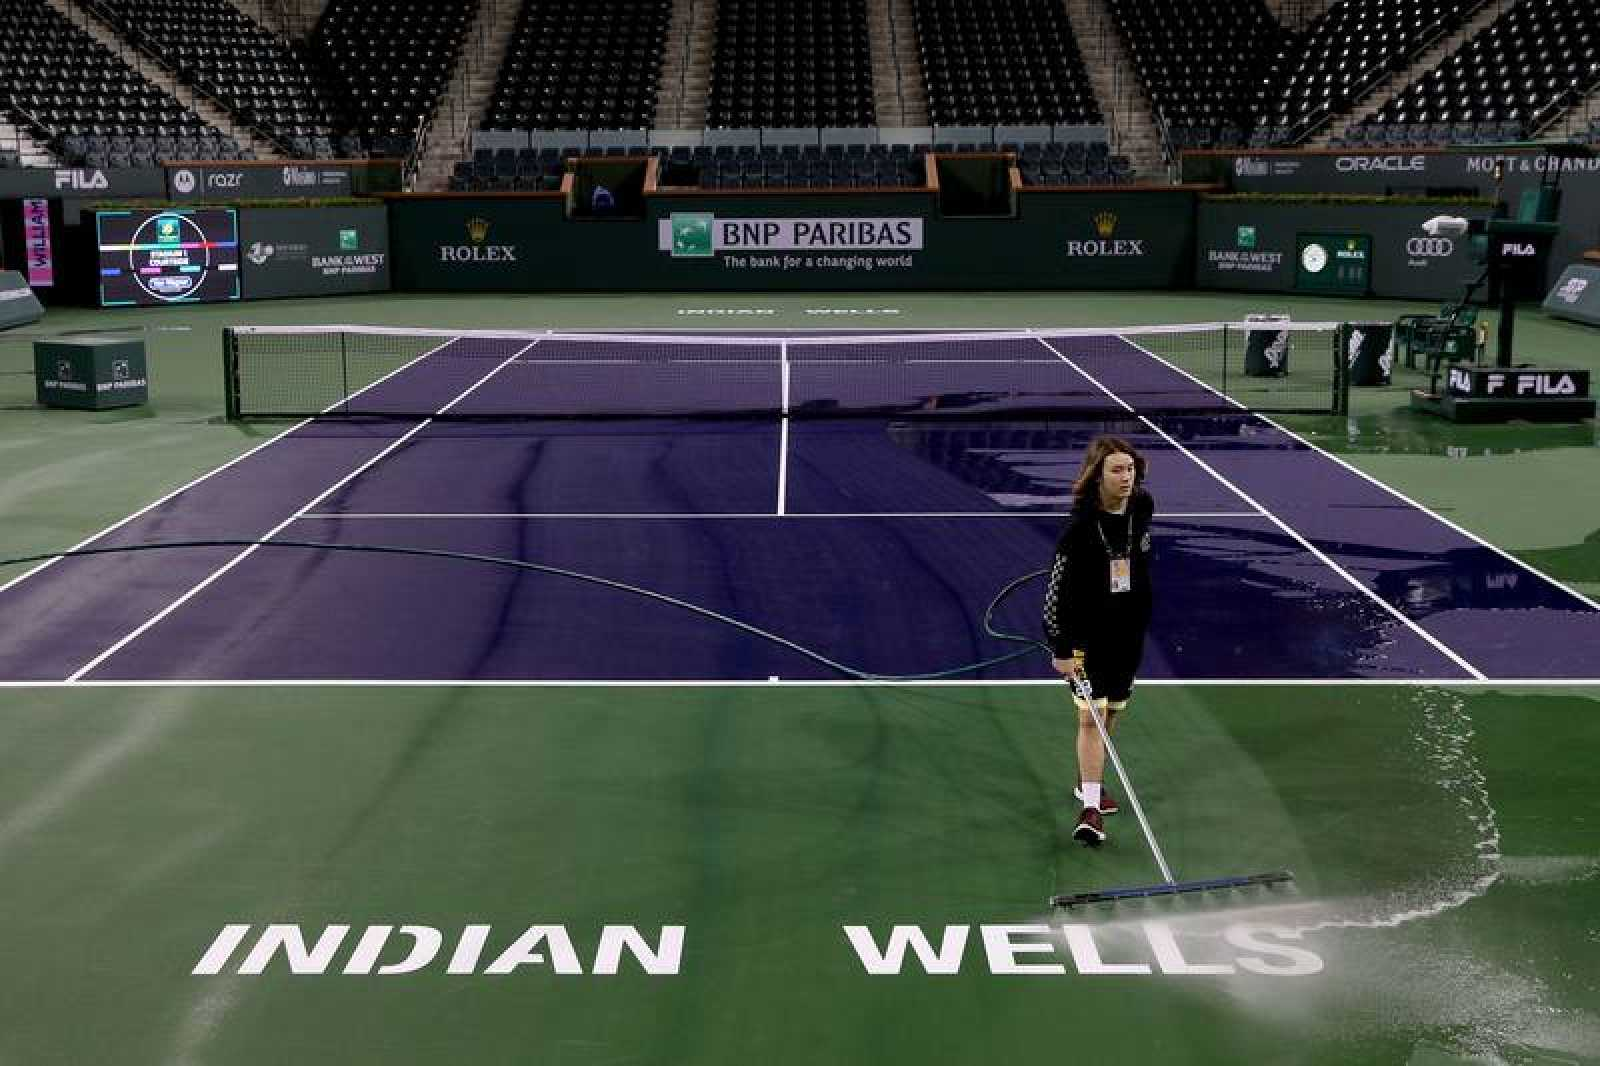 Indian Wells by gentileza